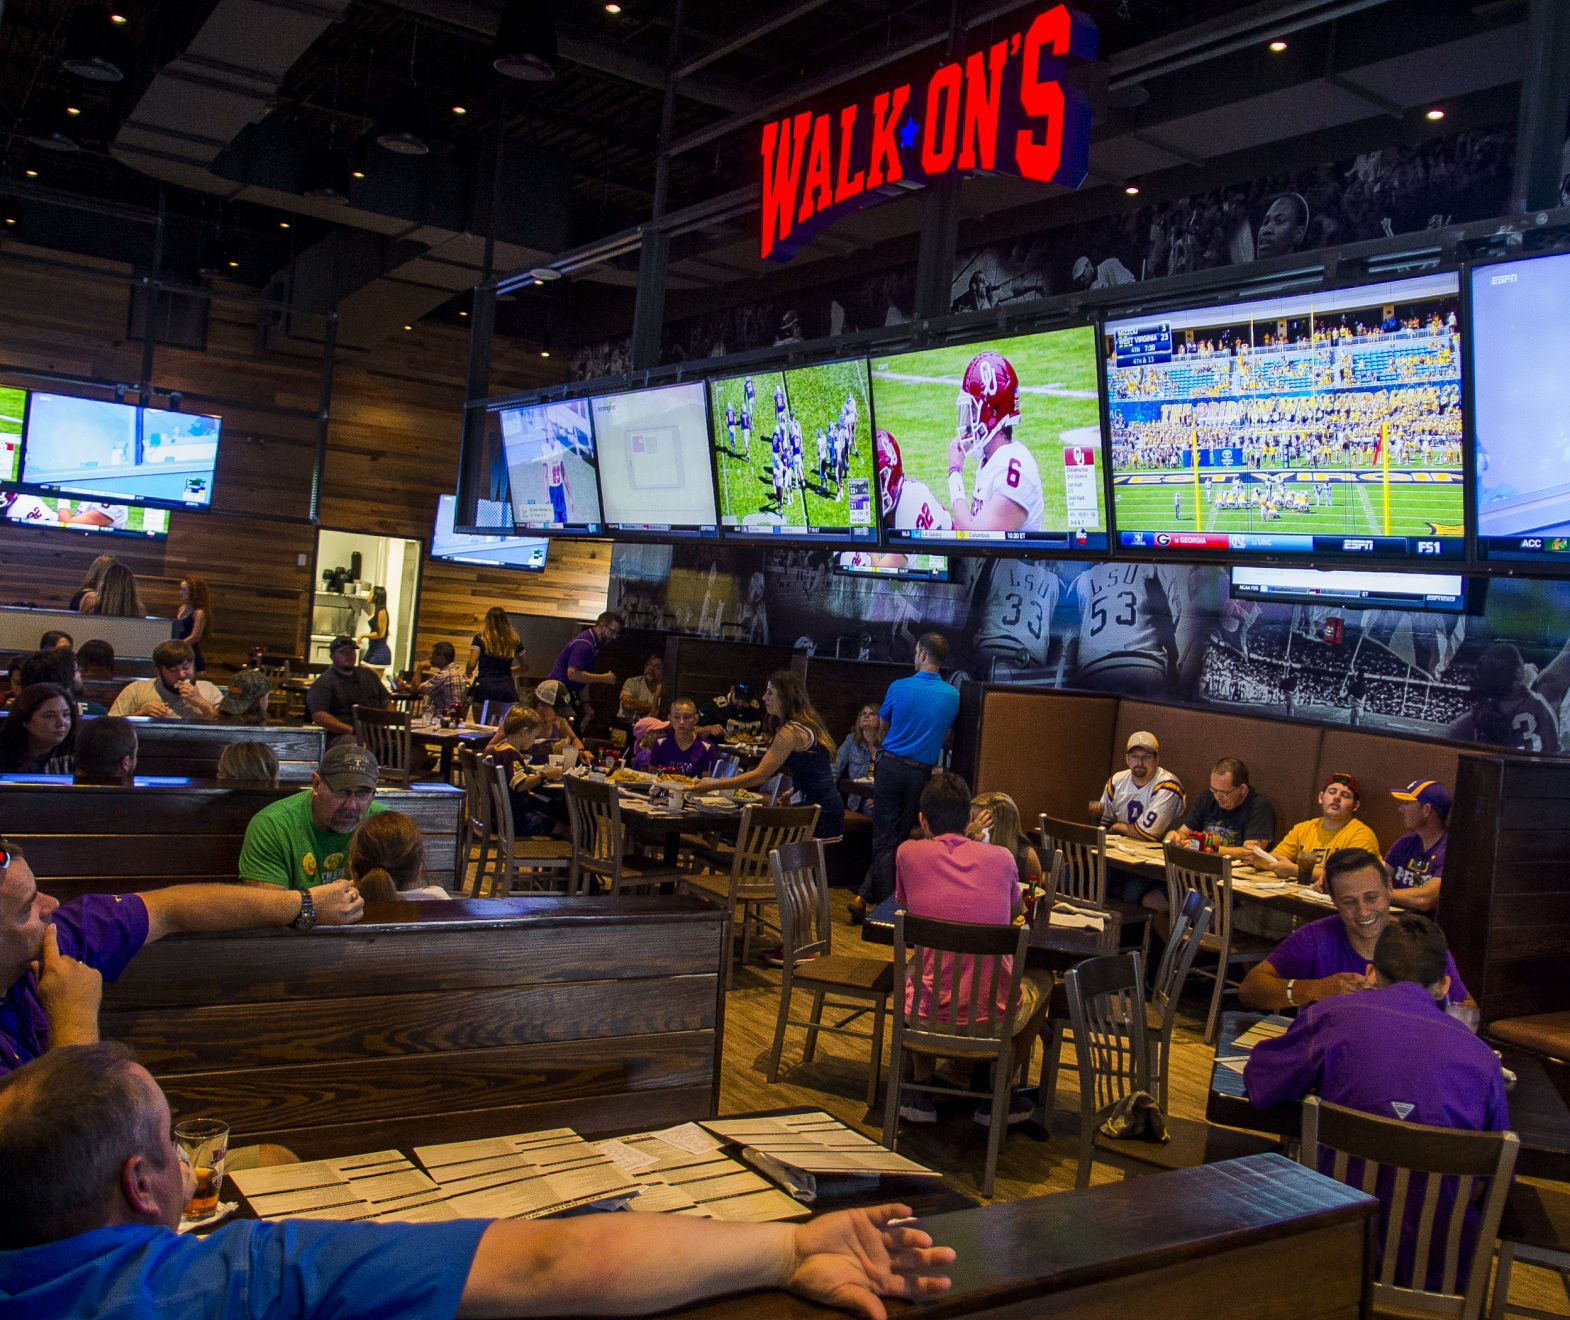 Walk On S Makes Slight Name Change Plans To Open Six Locations In Early 2020 Business Theadvocate Com